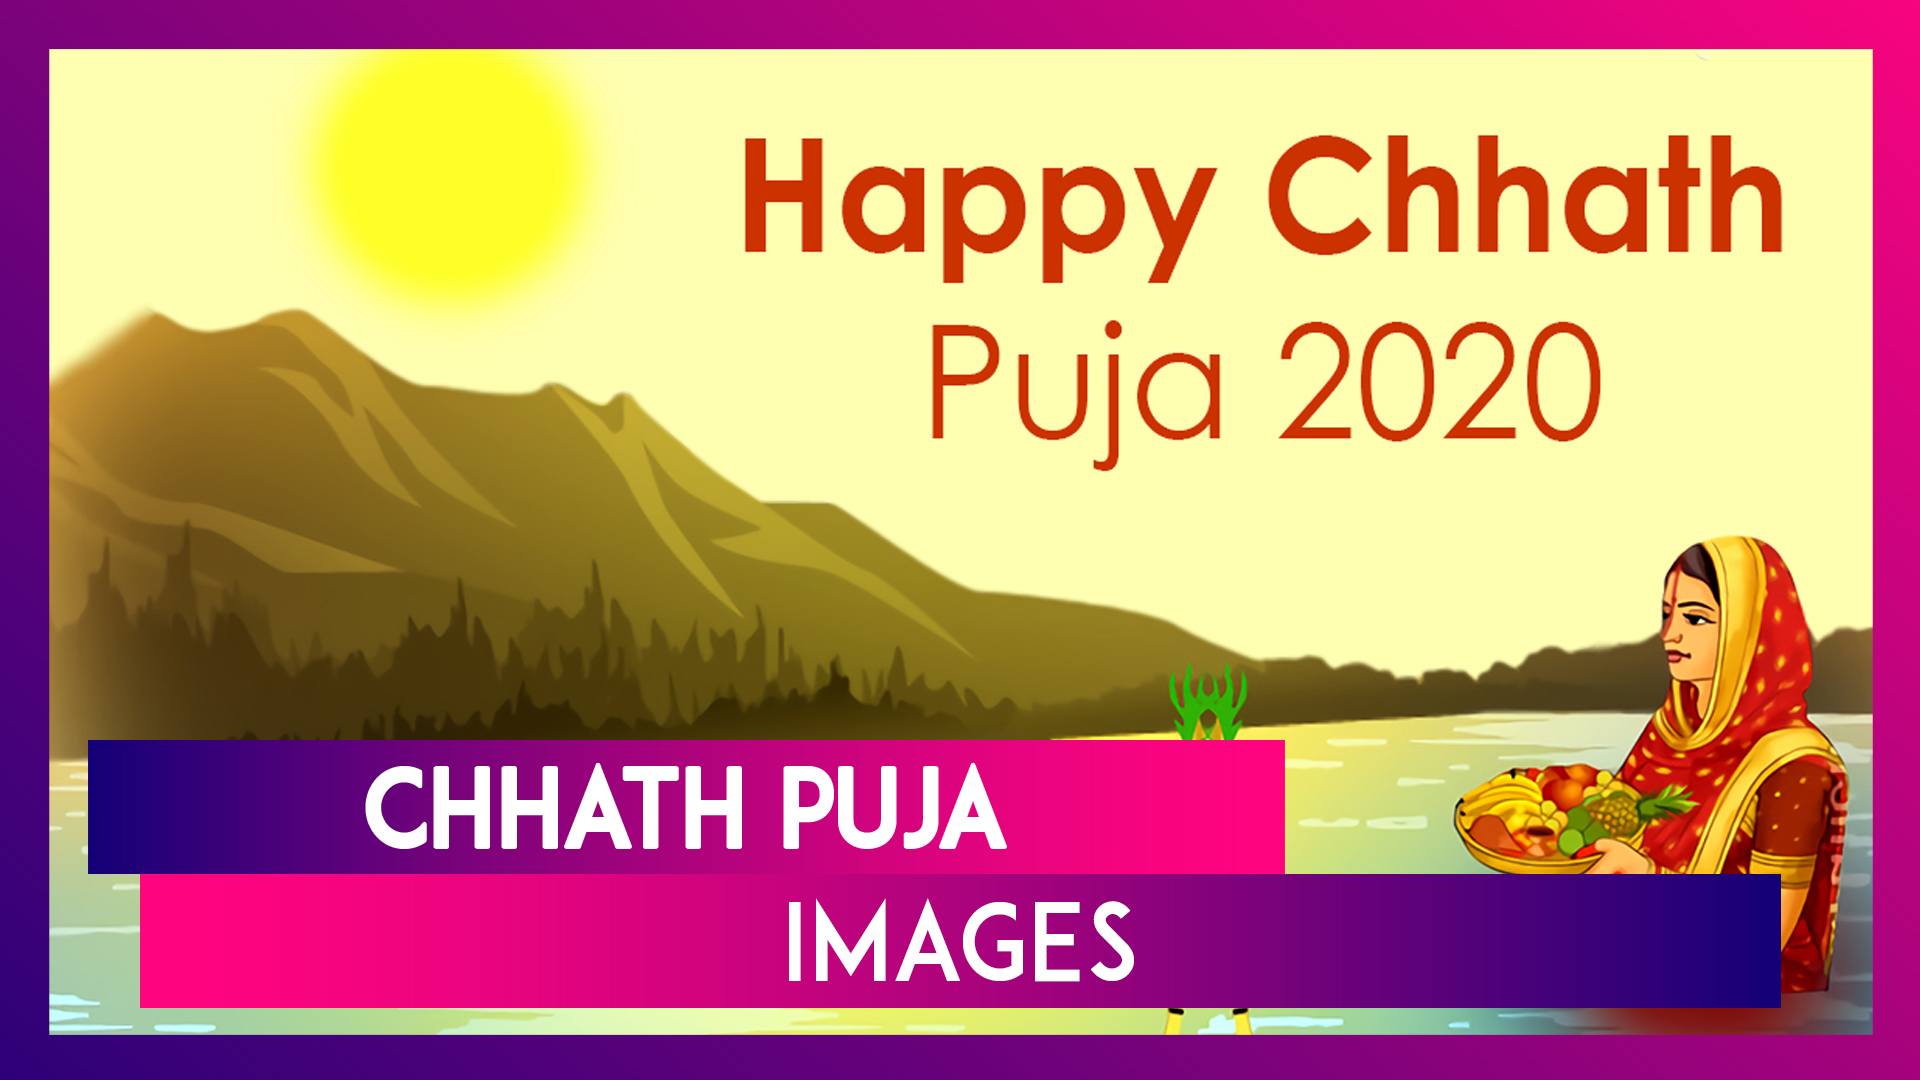 Chhath Puja 2020 HD Images & Digital Greetings, Quotes & Wishes To Celebrate The Mahaparv Chhath